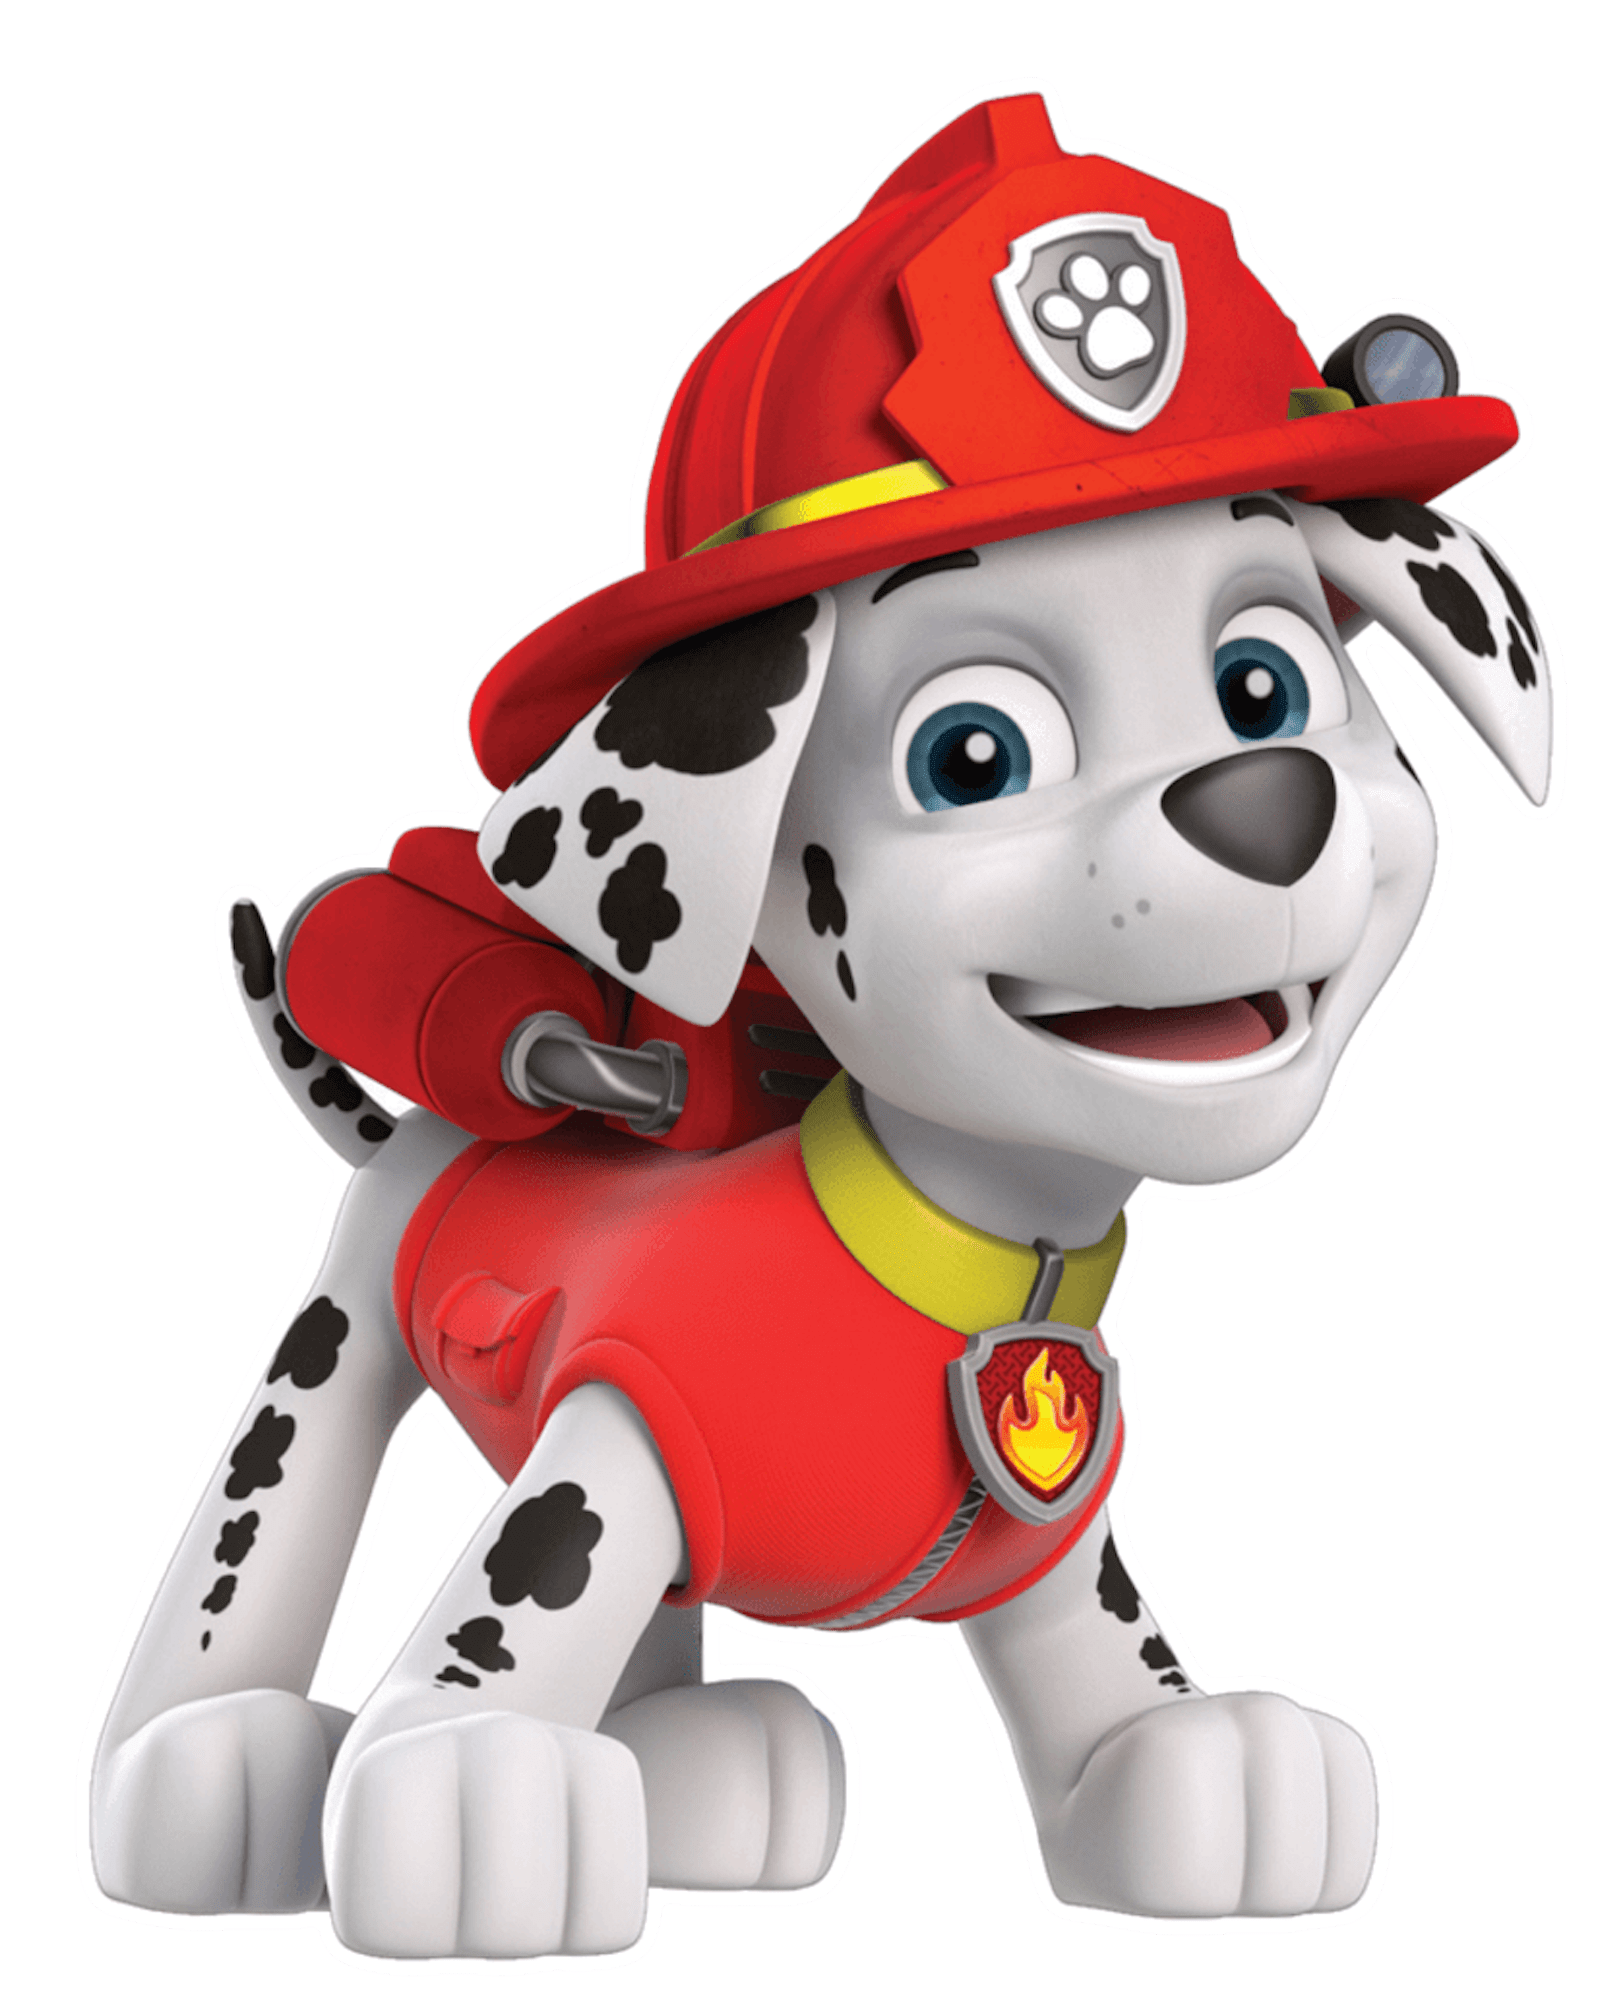 Paw patrol dogs png. Marshall smile clipart